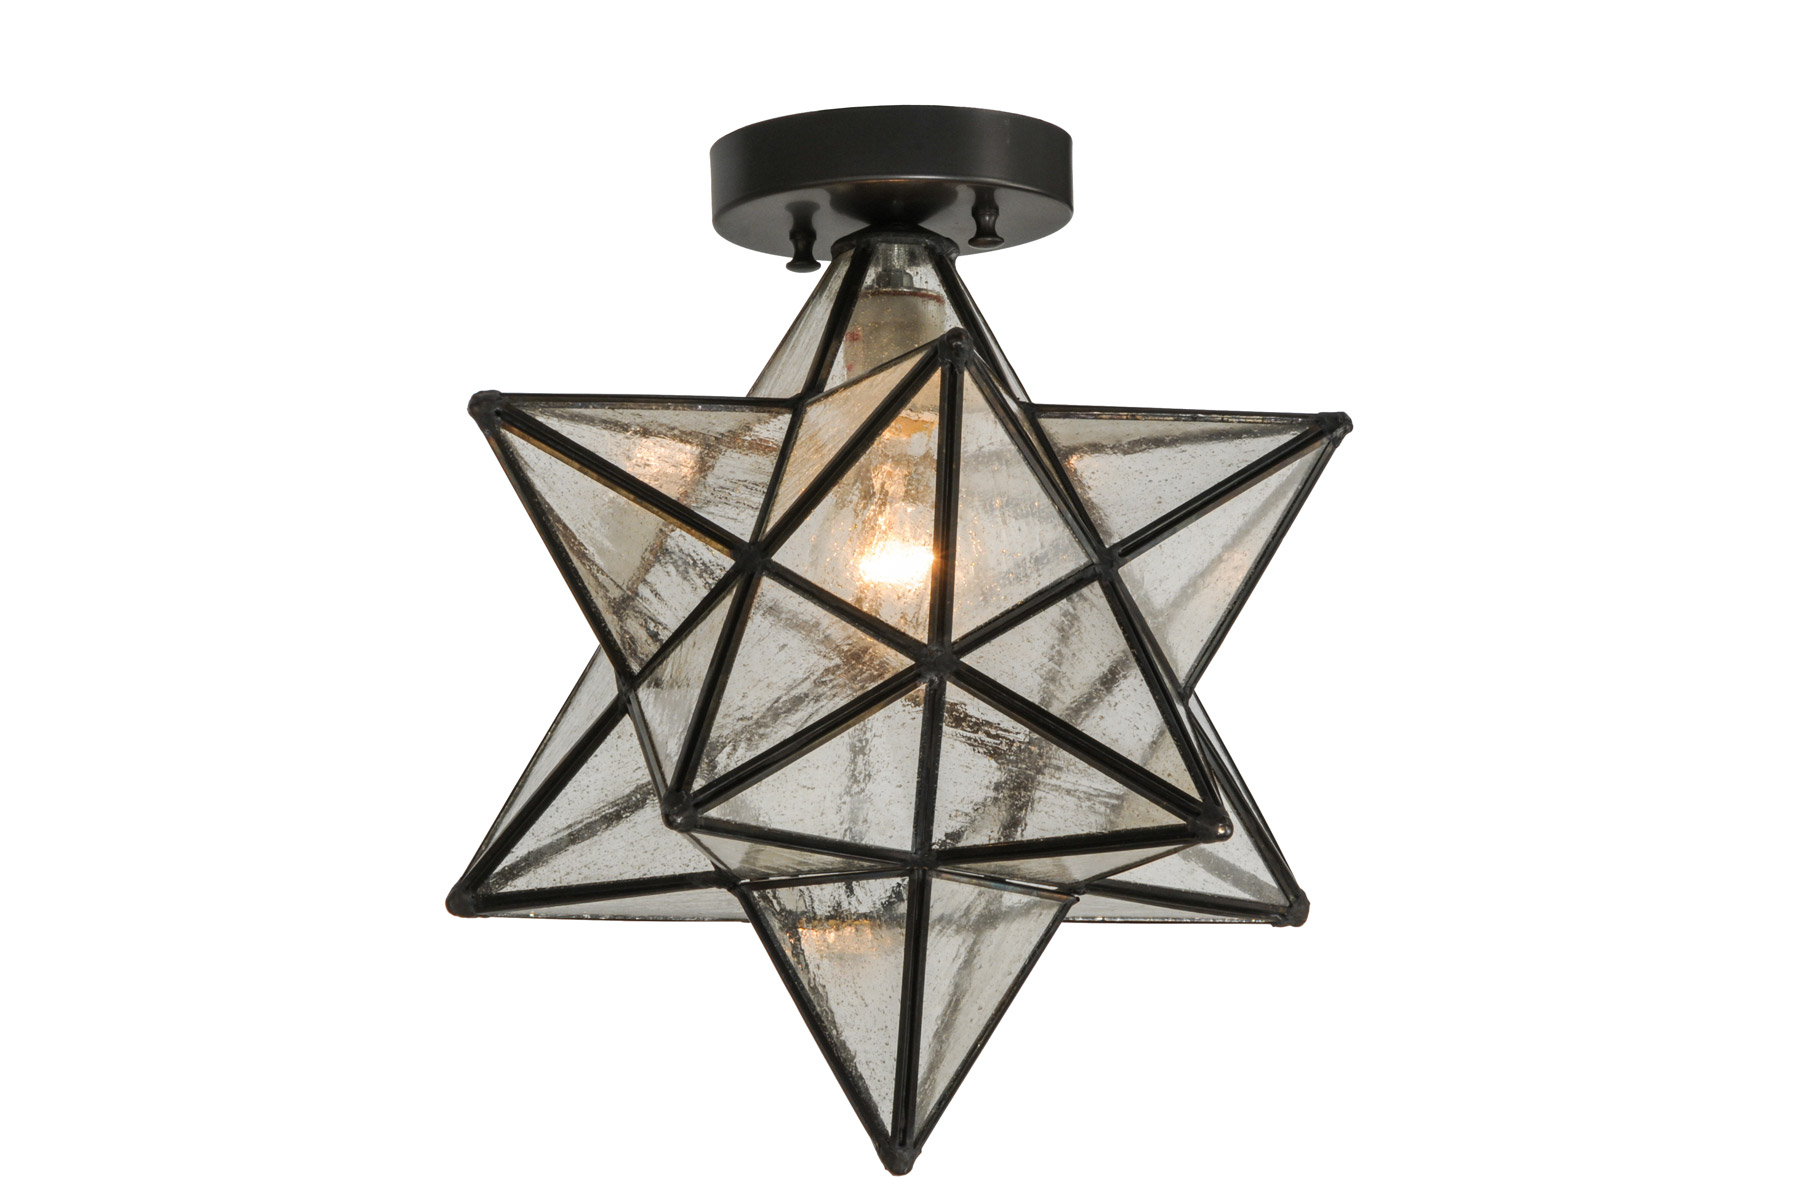 Decorative Star Ceiling Light Semi Flush Bathroom Fixture: Meyda 150958 Moravian Star Flush Mount Ceiling Fixture